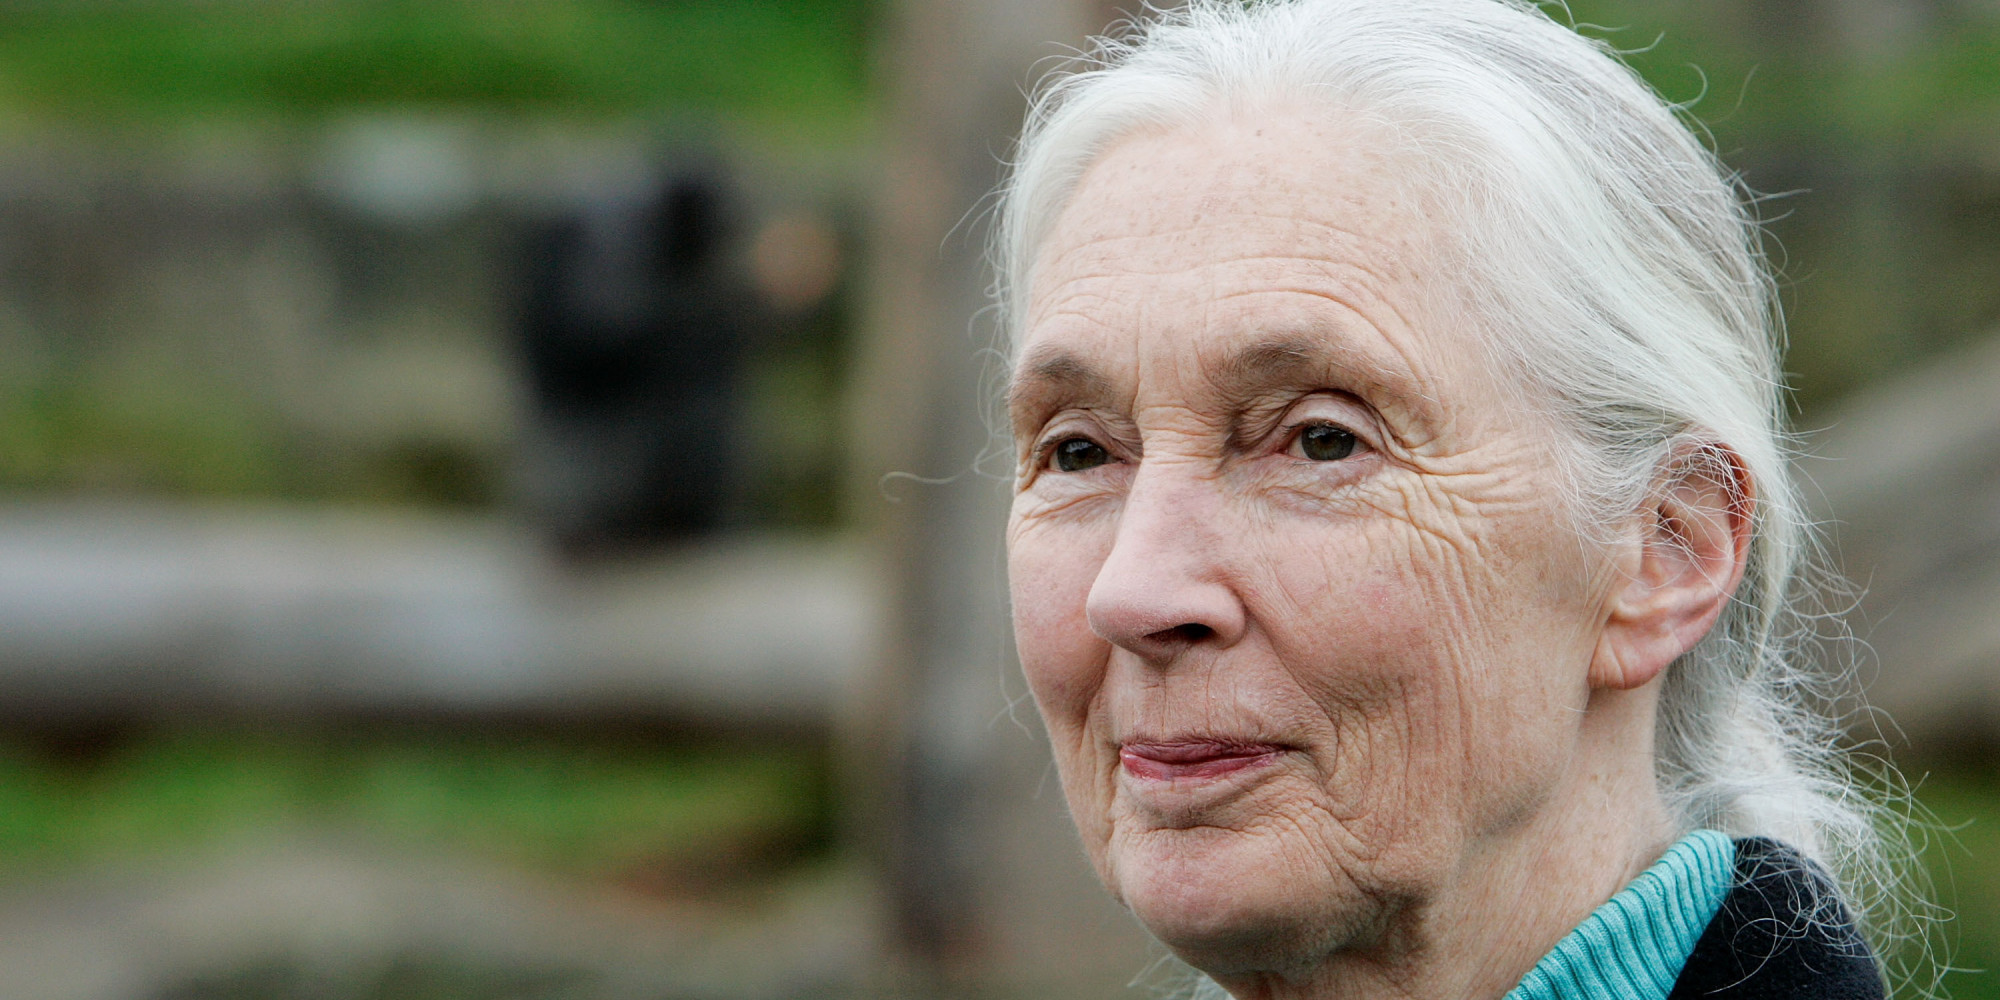 Jane Goodall Opens Up About Where Science Has Gone Wrong | HuffPost